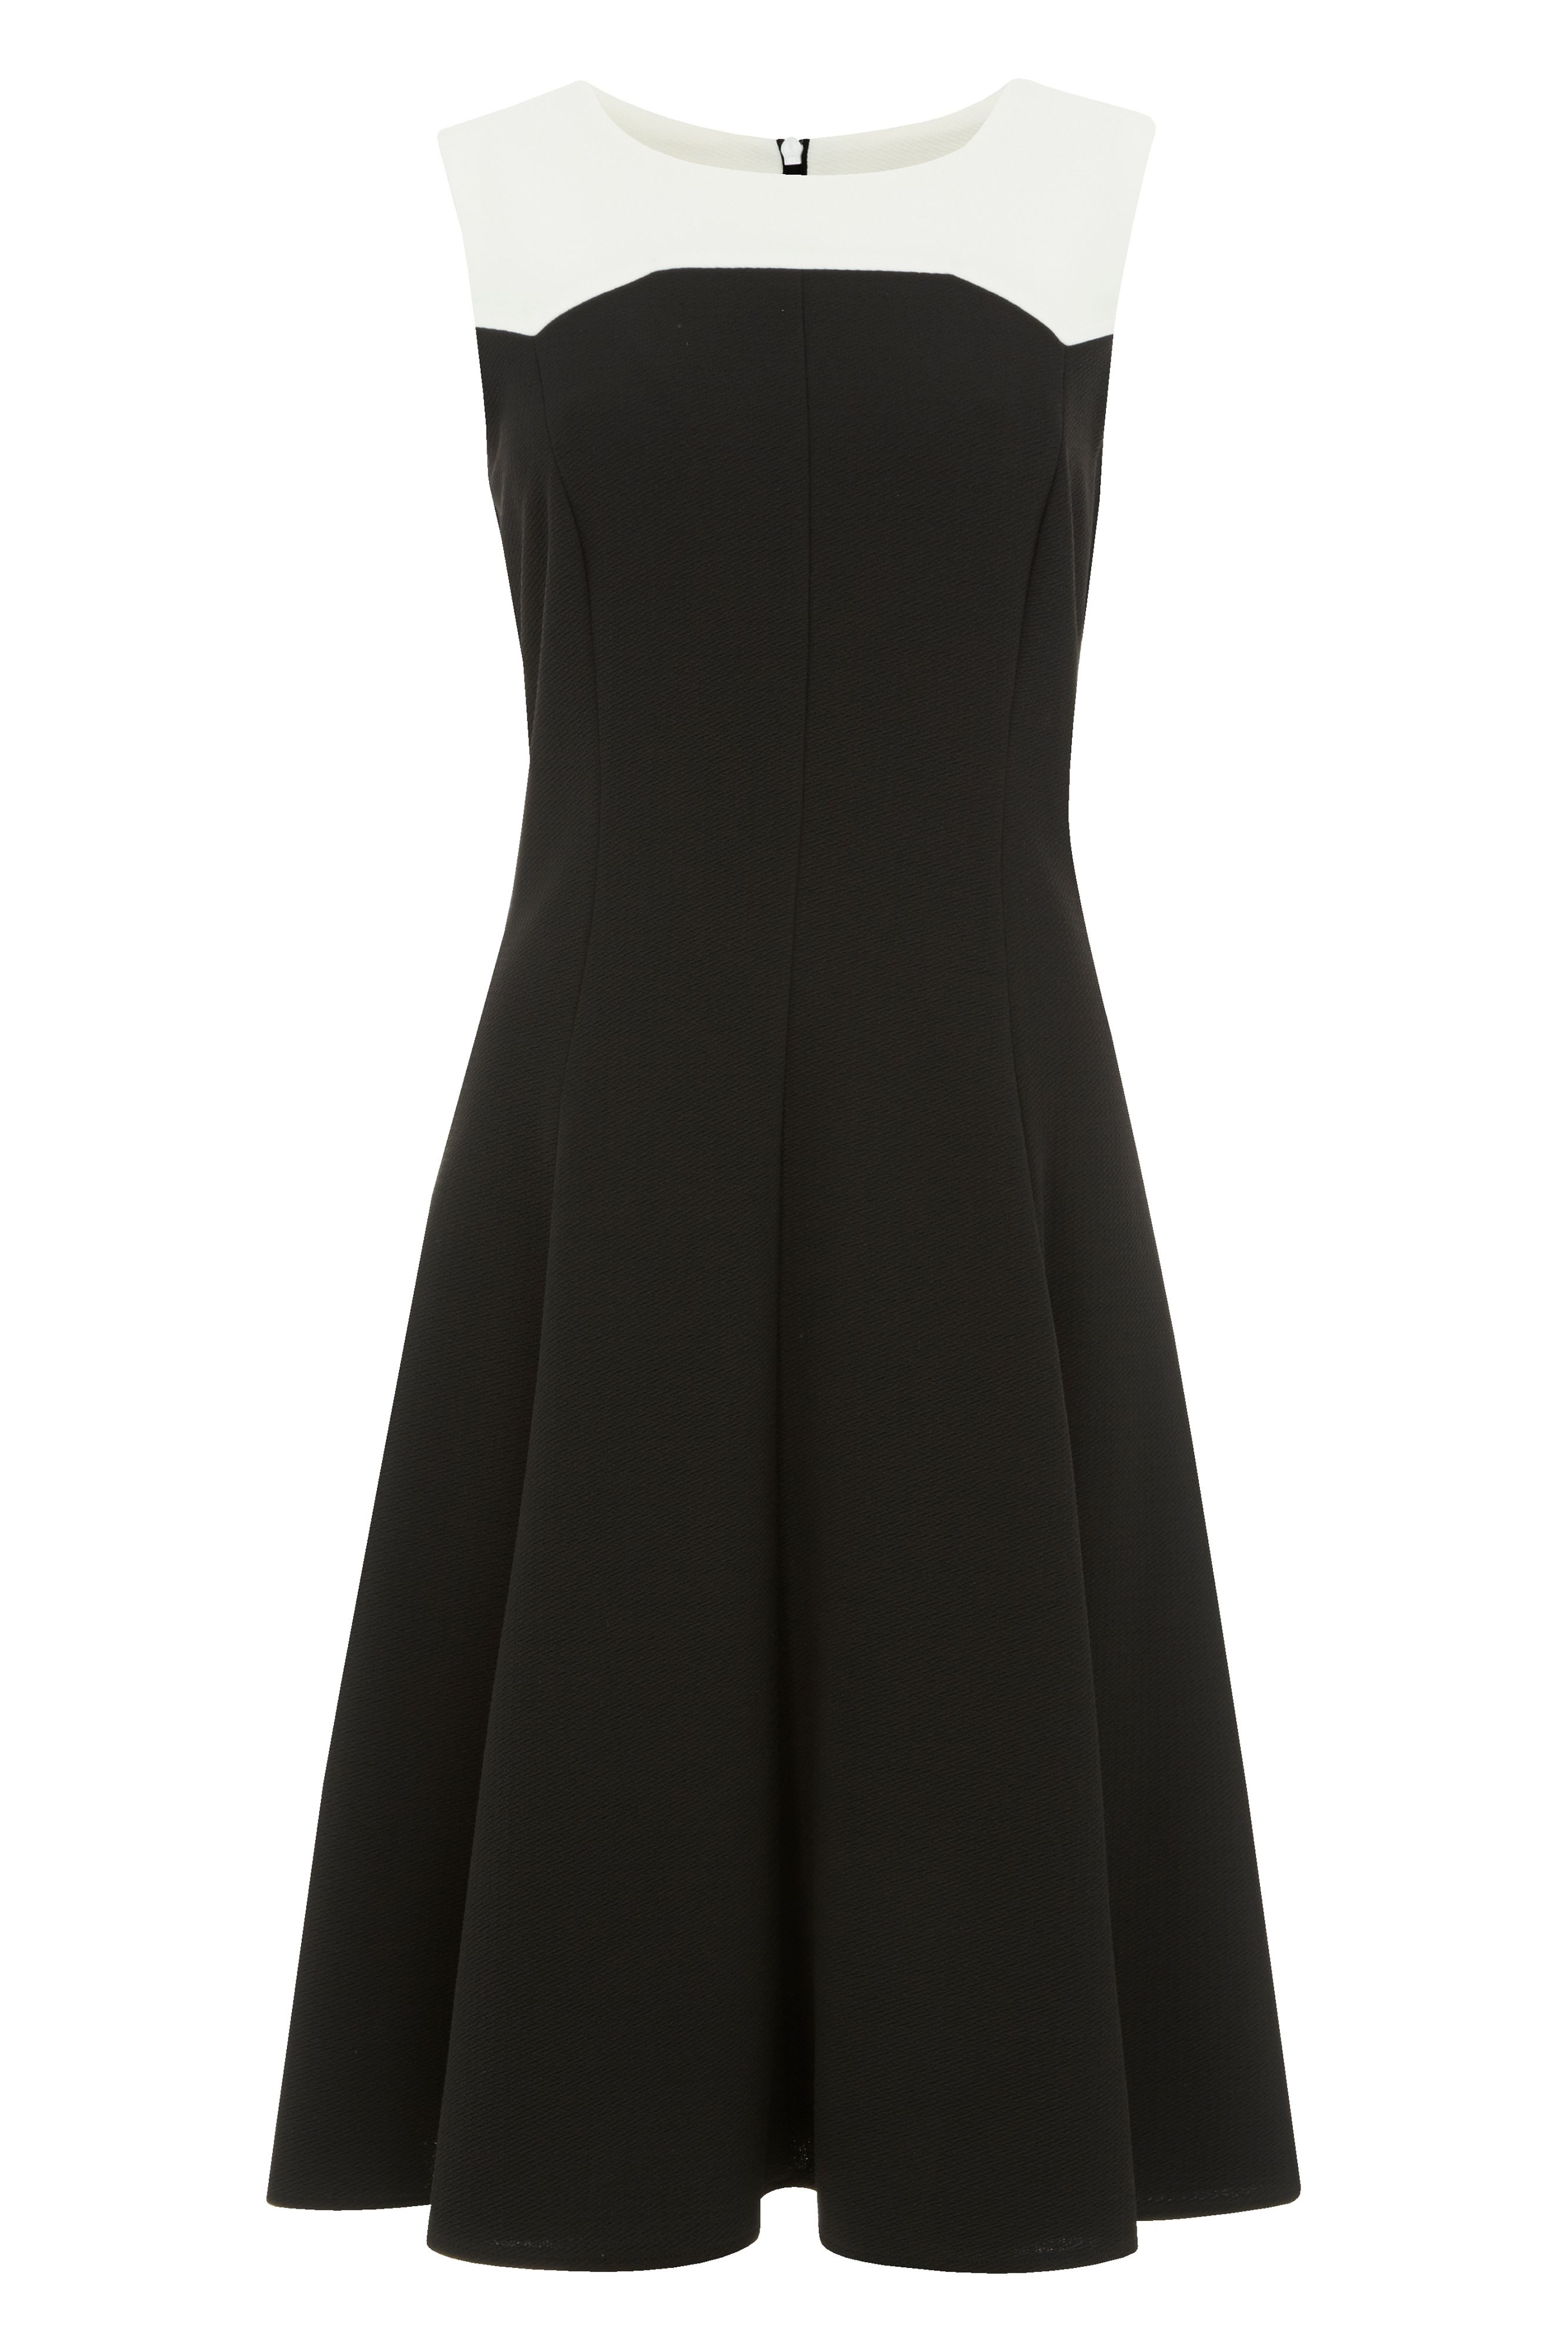 Roman Originals Contrast Monochrome Dress, Black